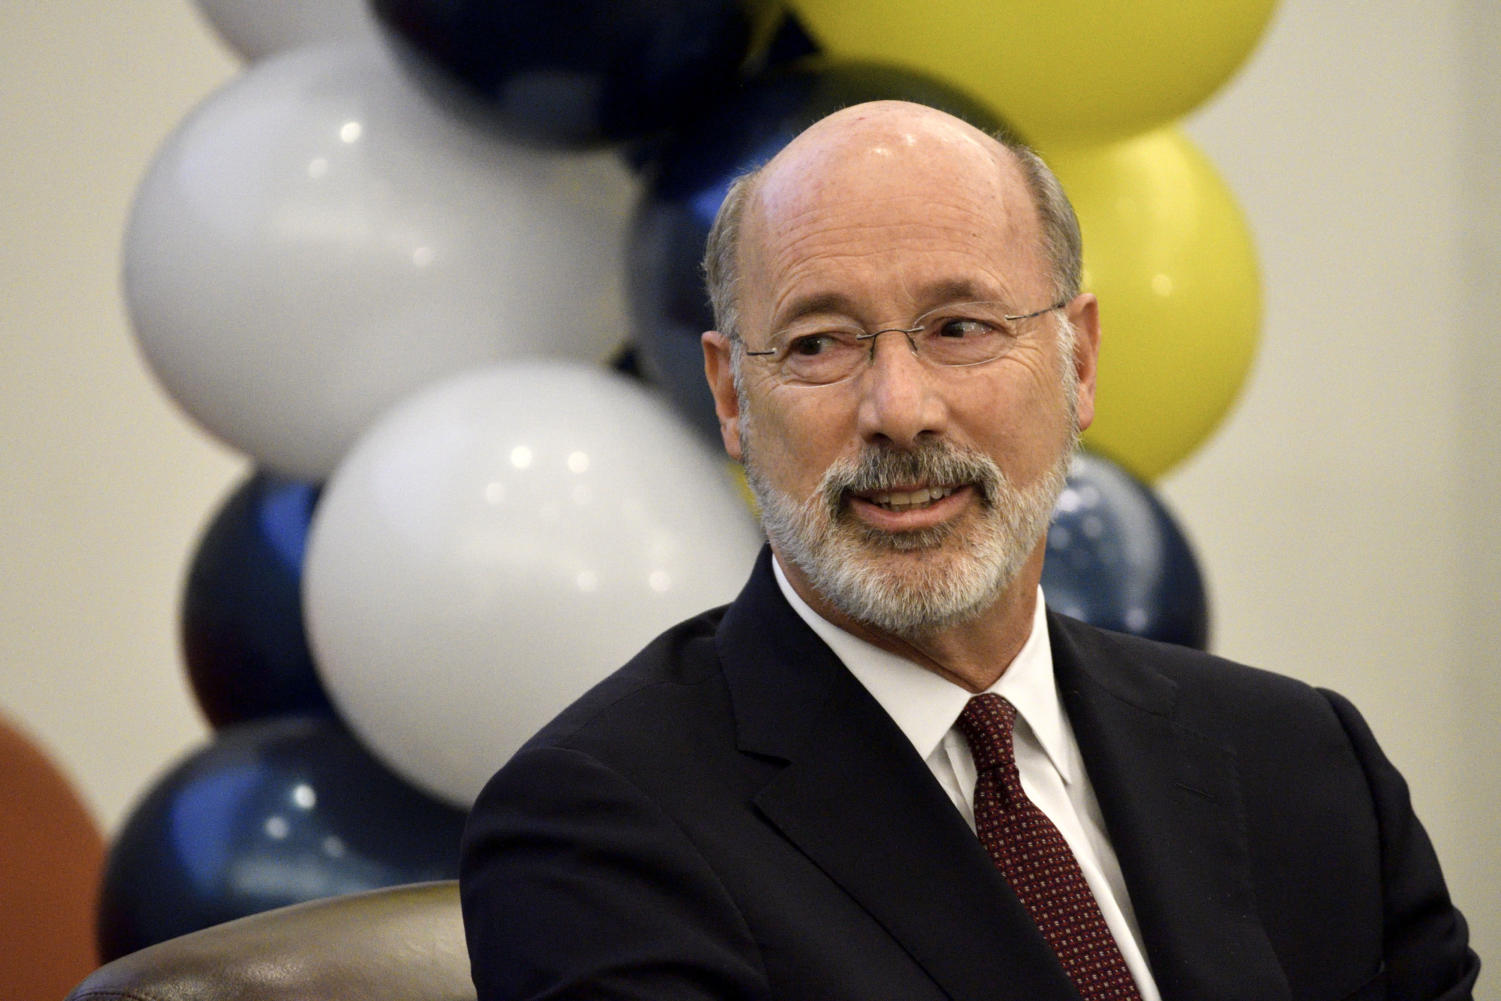 Tom Wolf, Incumbent and Democratic candidate for Governor of Pennsylvania attends a student forum in Philadelphia, Pa., on Oct. 10, 2018.  (Bastiaan Slabbers/NurPhoto/Zuma Press/TNS)